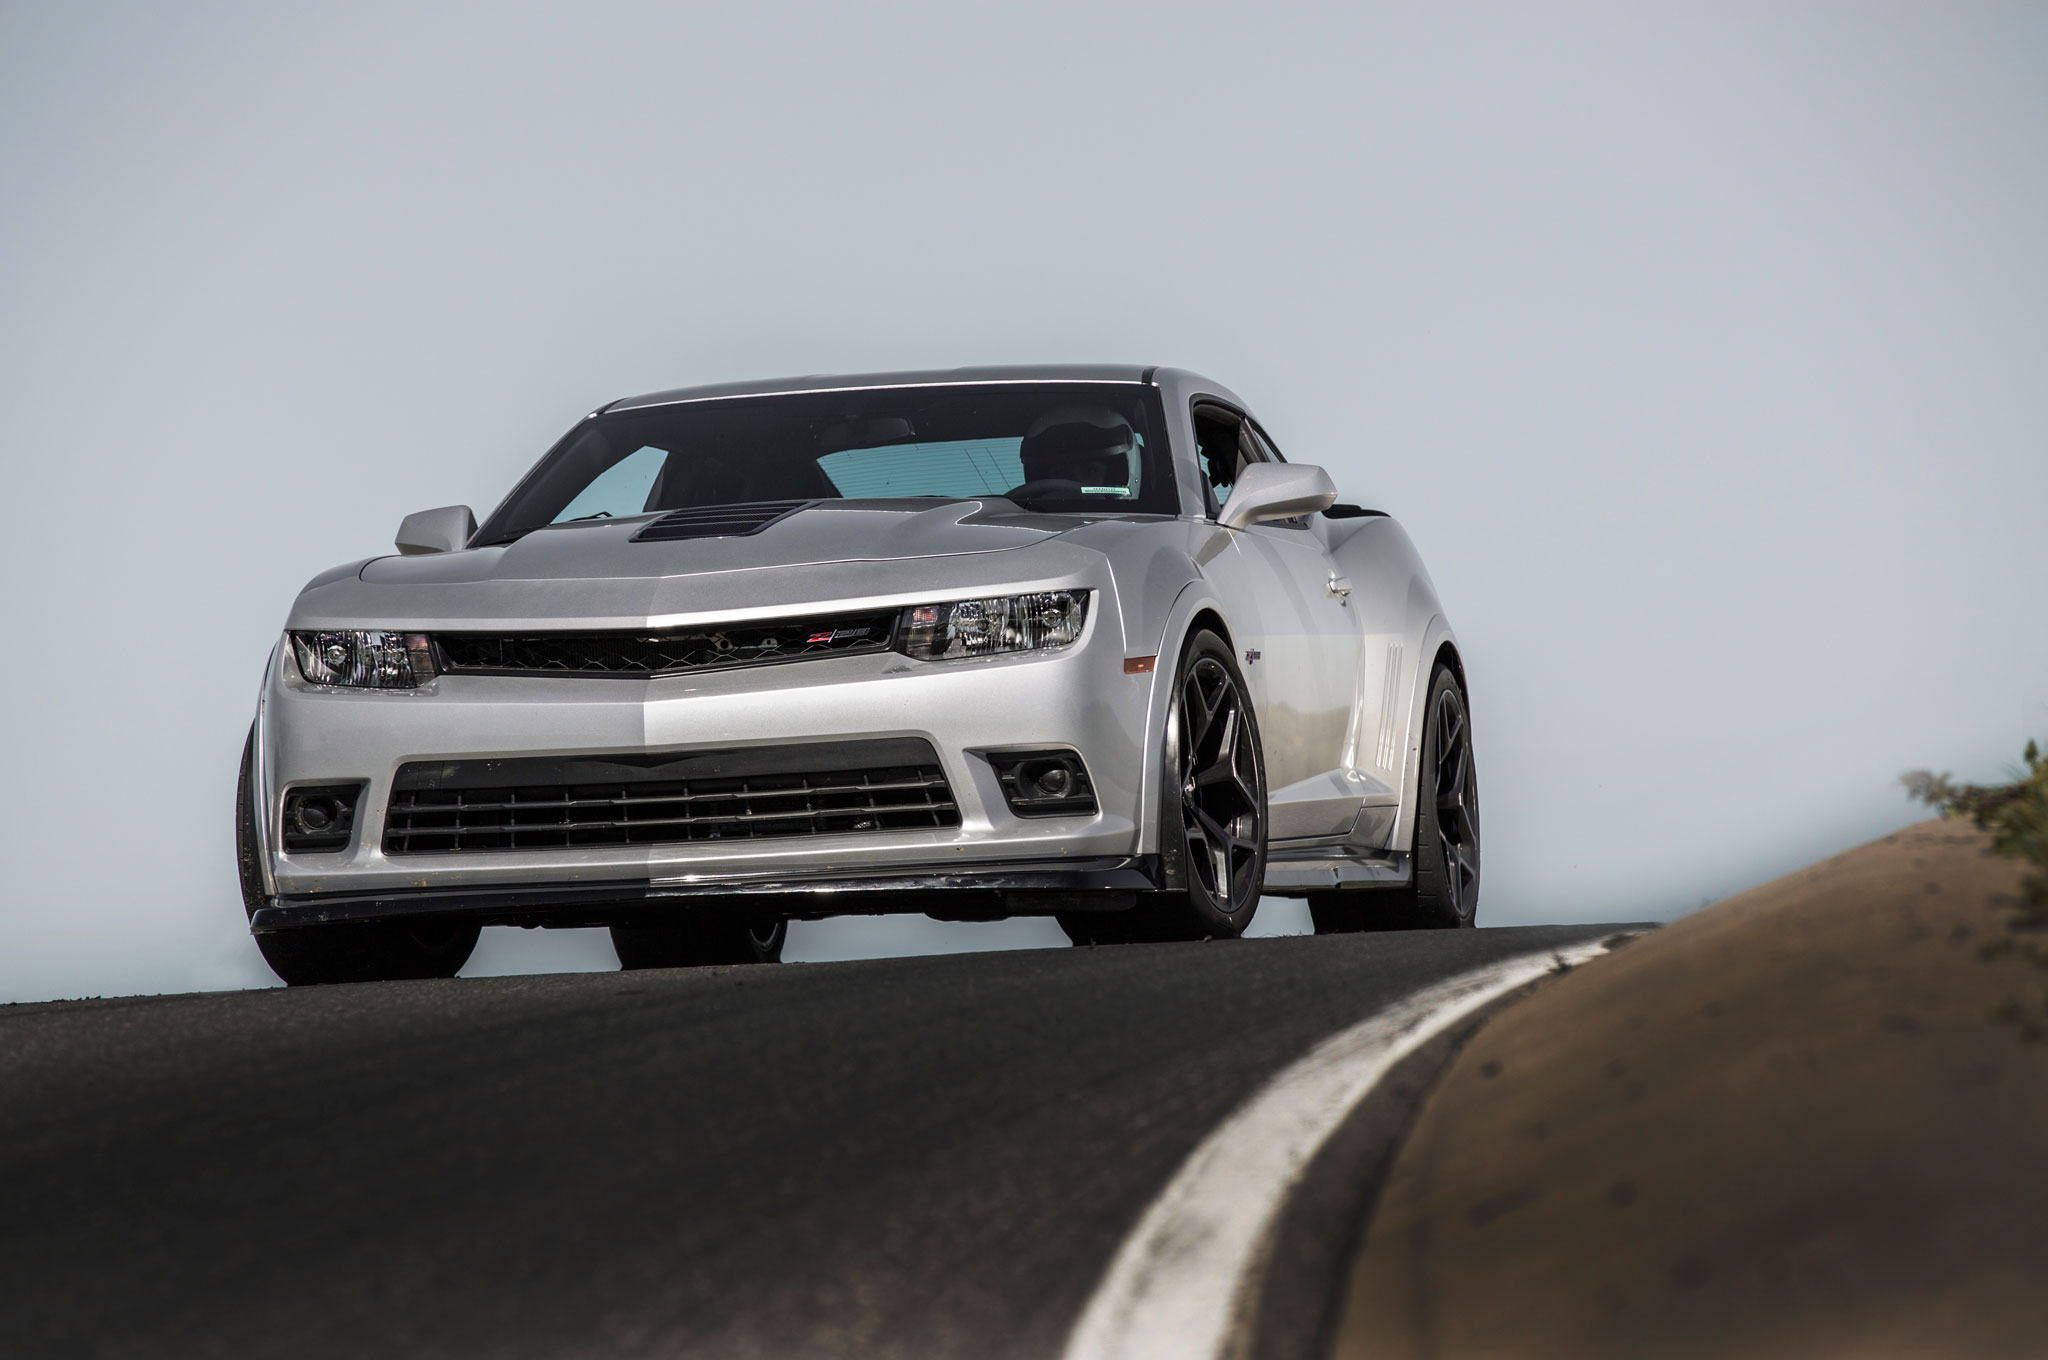 2014 Chevrolet Camaro Z/28 Priced at $75,000